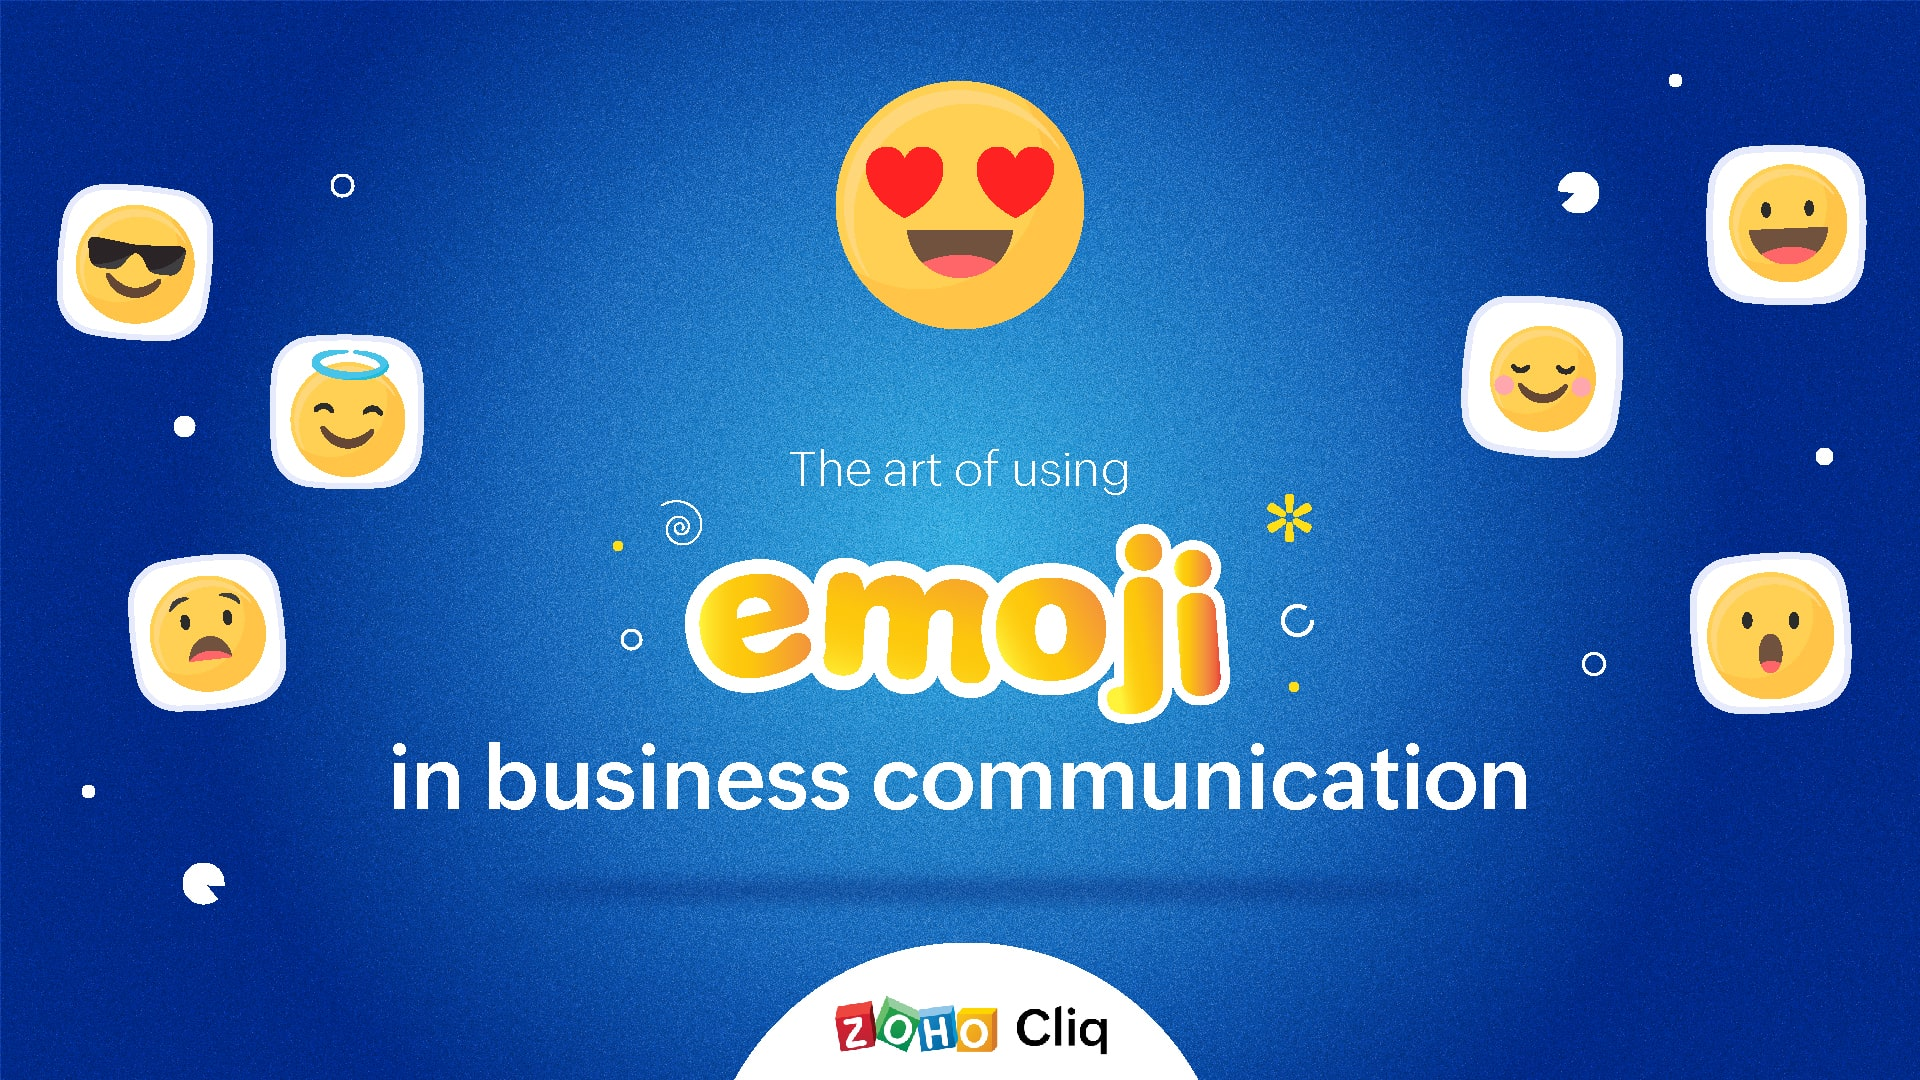 The art of using emoji in business communication